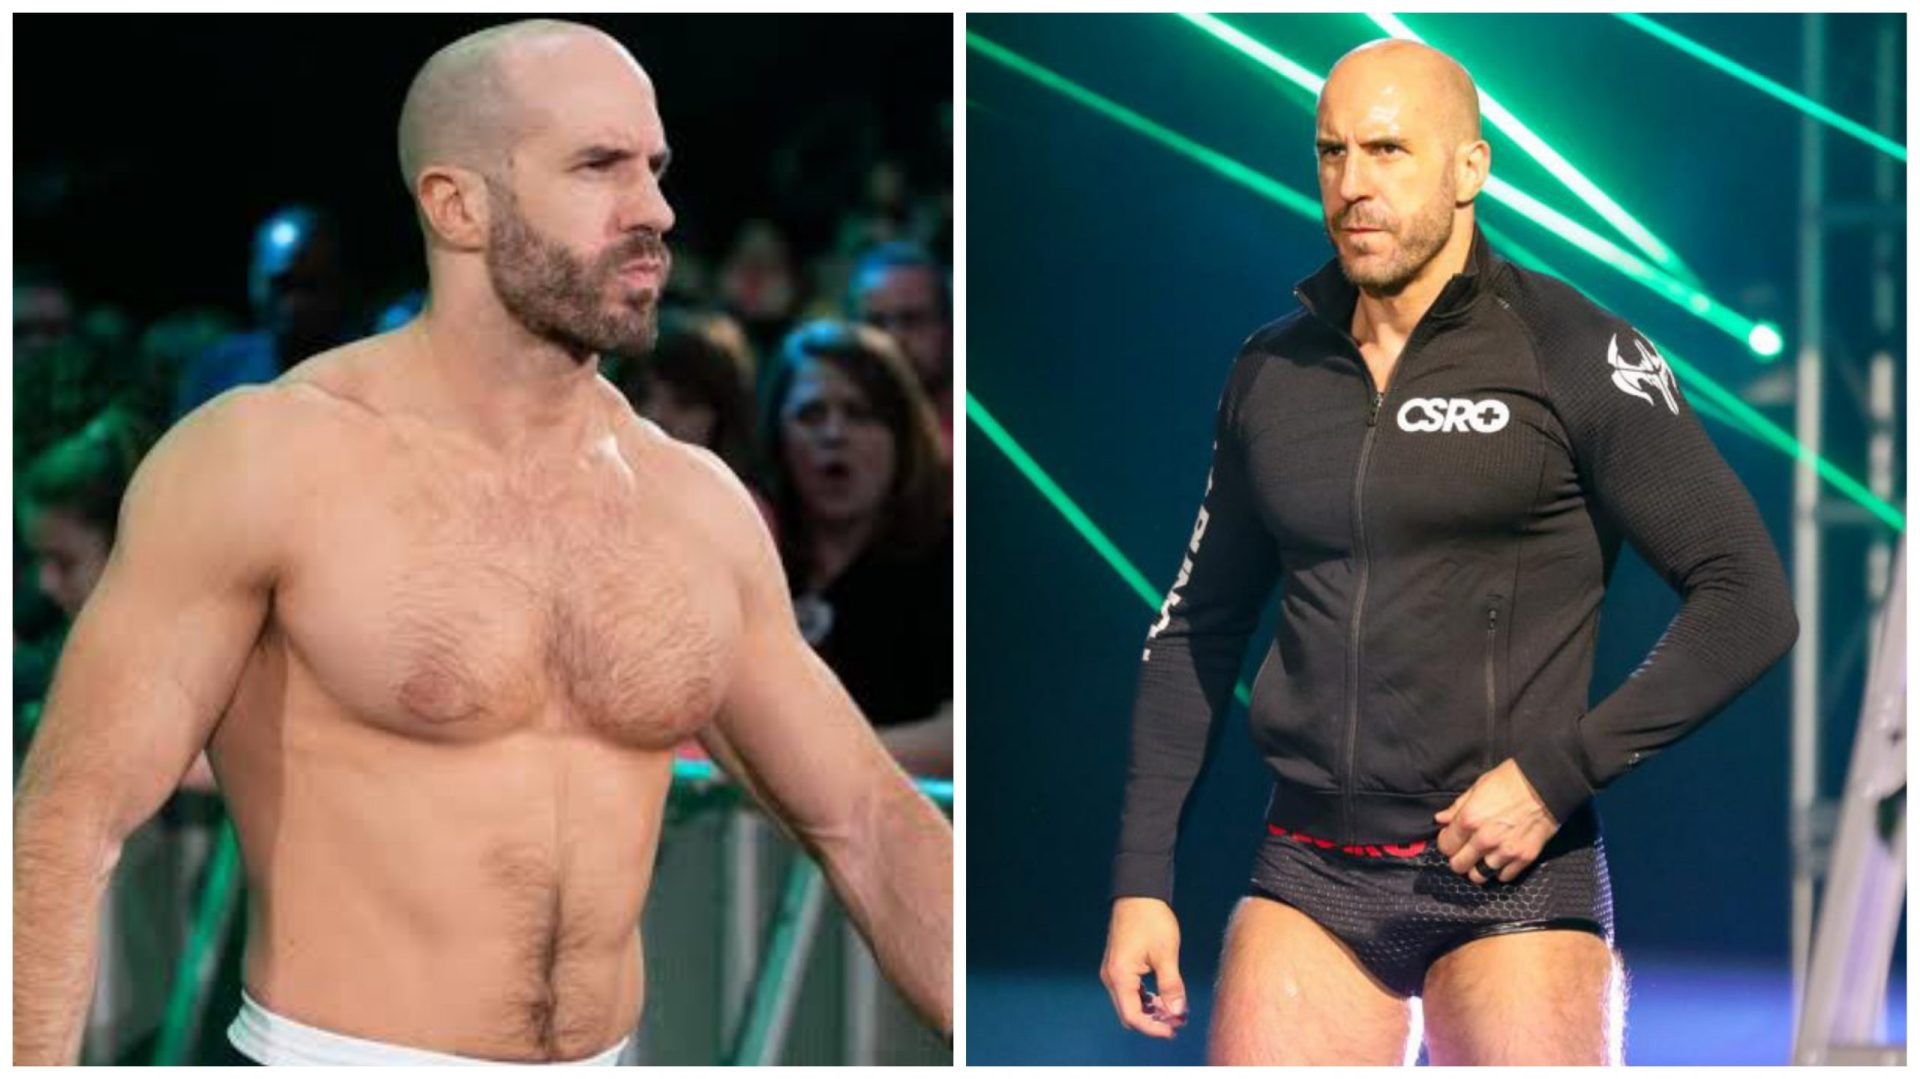 Cesaro close to renewing his deal with the WWE, reports suggest - THE SPORTS ROOM